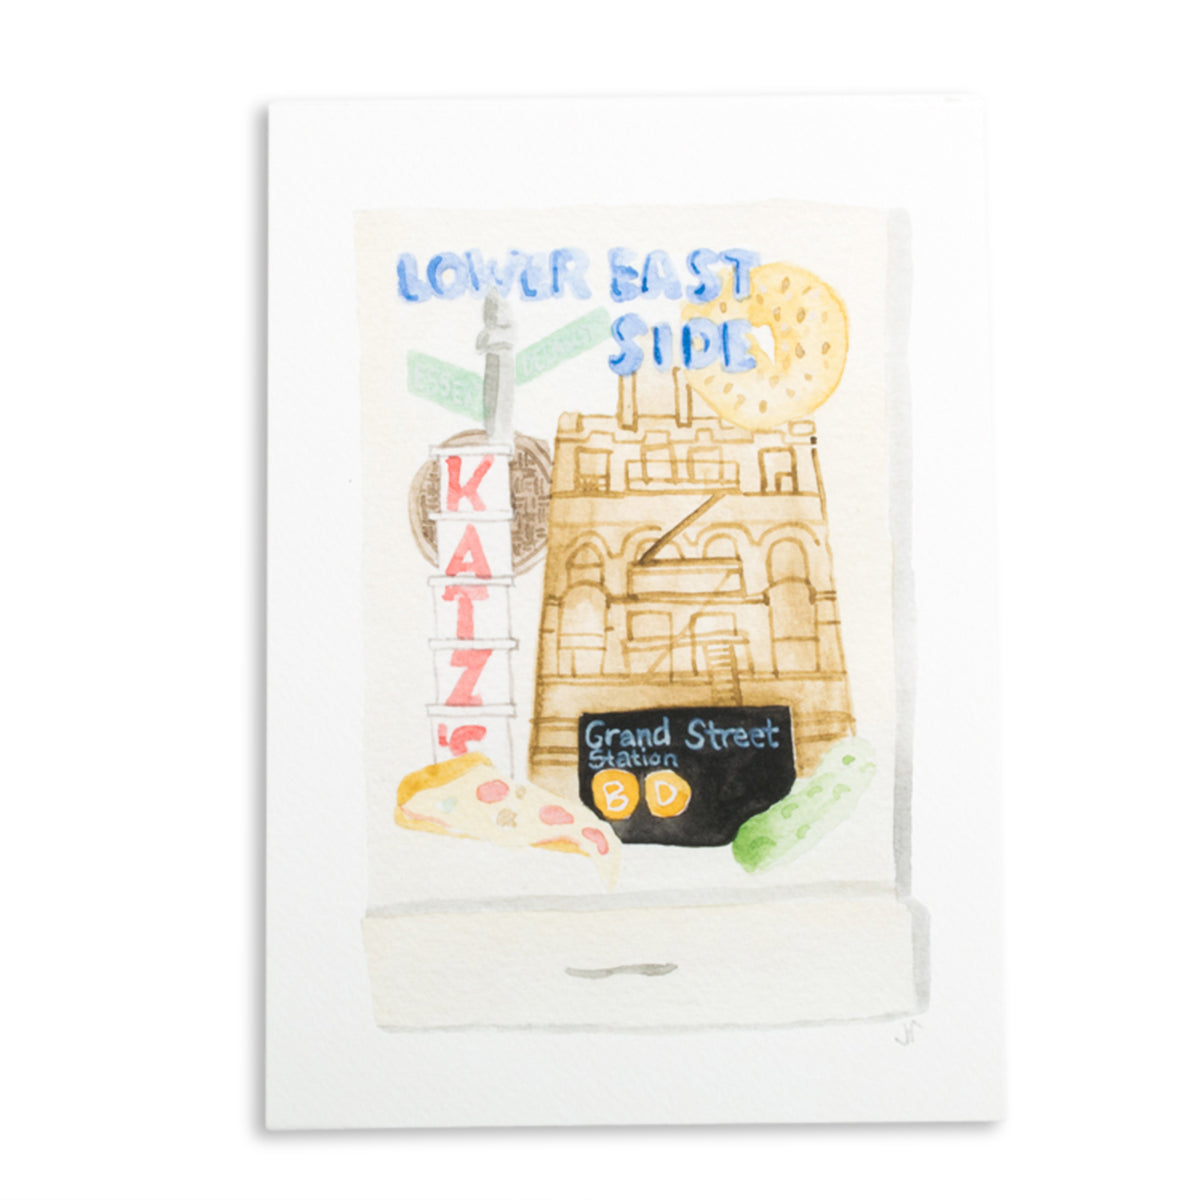 LES Matchbook Watercolor Print